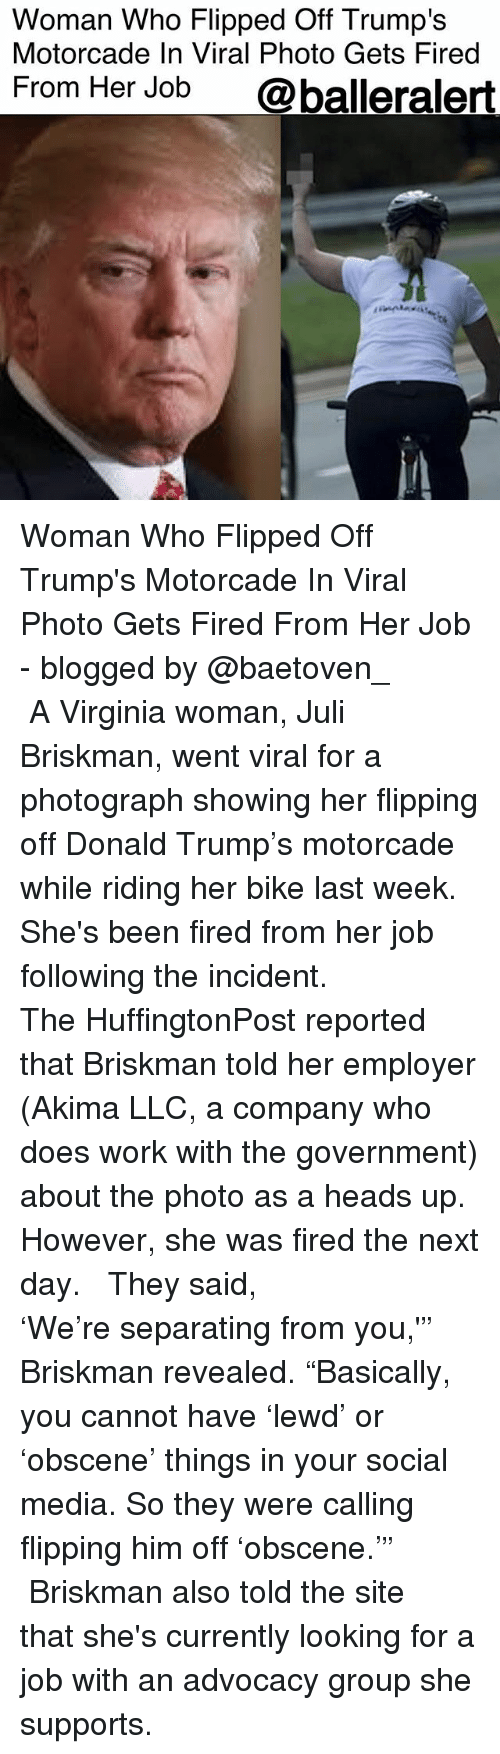 "Donald Trump, Memes, and Social Media: Woman Who Flipped Off Trump's  Motorcade In Viral Photo Gets Fired  From Her Job  @balleralert Woman Who Flipped Off Trump's Motorcade In Viral Photo Gets Fired From Her Job - blogged by @baetoven_ ⠀⠀⠀⠀⠀⠀⠀ ⠀⠀⠀⠀⠀⠀⠀ A Virginia woman, Juli Briskman, went viral for a photograph showing her flipping off Donald Trump's motorcade while riding her bike last week. She's been fired from her job following the incident. ⠀⠀⠀⠀⠀⠀⠀ ⠀⠀⠀⠀⠀⠀⠀ The HuffingtonPost reported that Briskman told her employer (Akima LLC, a company who does work with the government) about the photo as a heads up. However, she was fired the next day. ⠀⠀⠀⠀⠀⠀⠀ ⠀⠀⠀⠀⠀⠀⠀ They said, 'We're separating from you,'"" Briskman revealed. ""Basically, you cannot have 'lewd' or 'obscene' things in your social media. So they were calling flipping him off 'obscene.'"" ⠀⠀⠀⠀⠀⠀⠀ ⠀⠀⠀⠀⠀⠀⠀ Briskman also told the site that she's currently looking for a job with an advocacy group she supports."